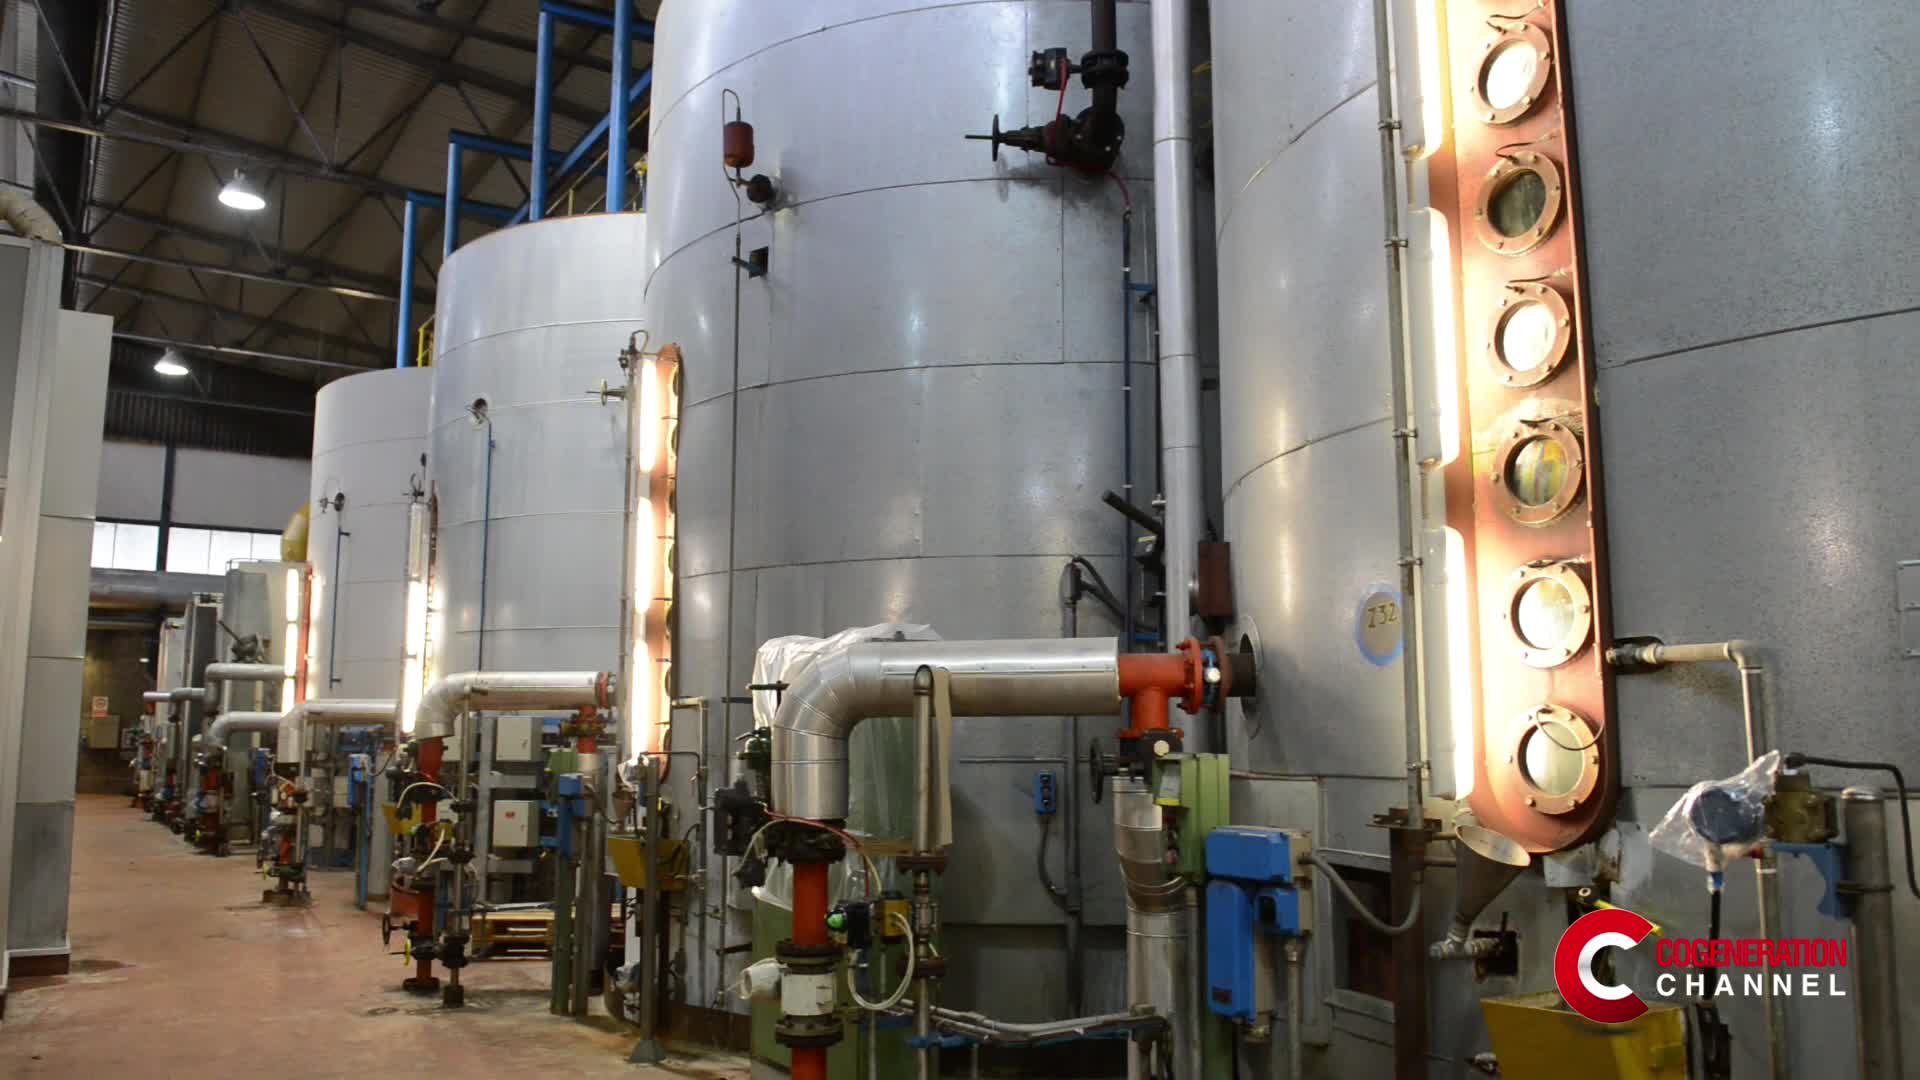 Eridania Sugar refinery: from beets to biogas